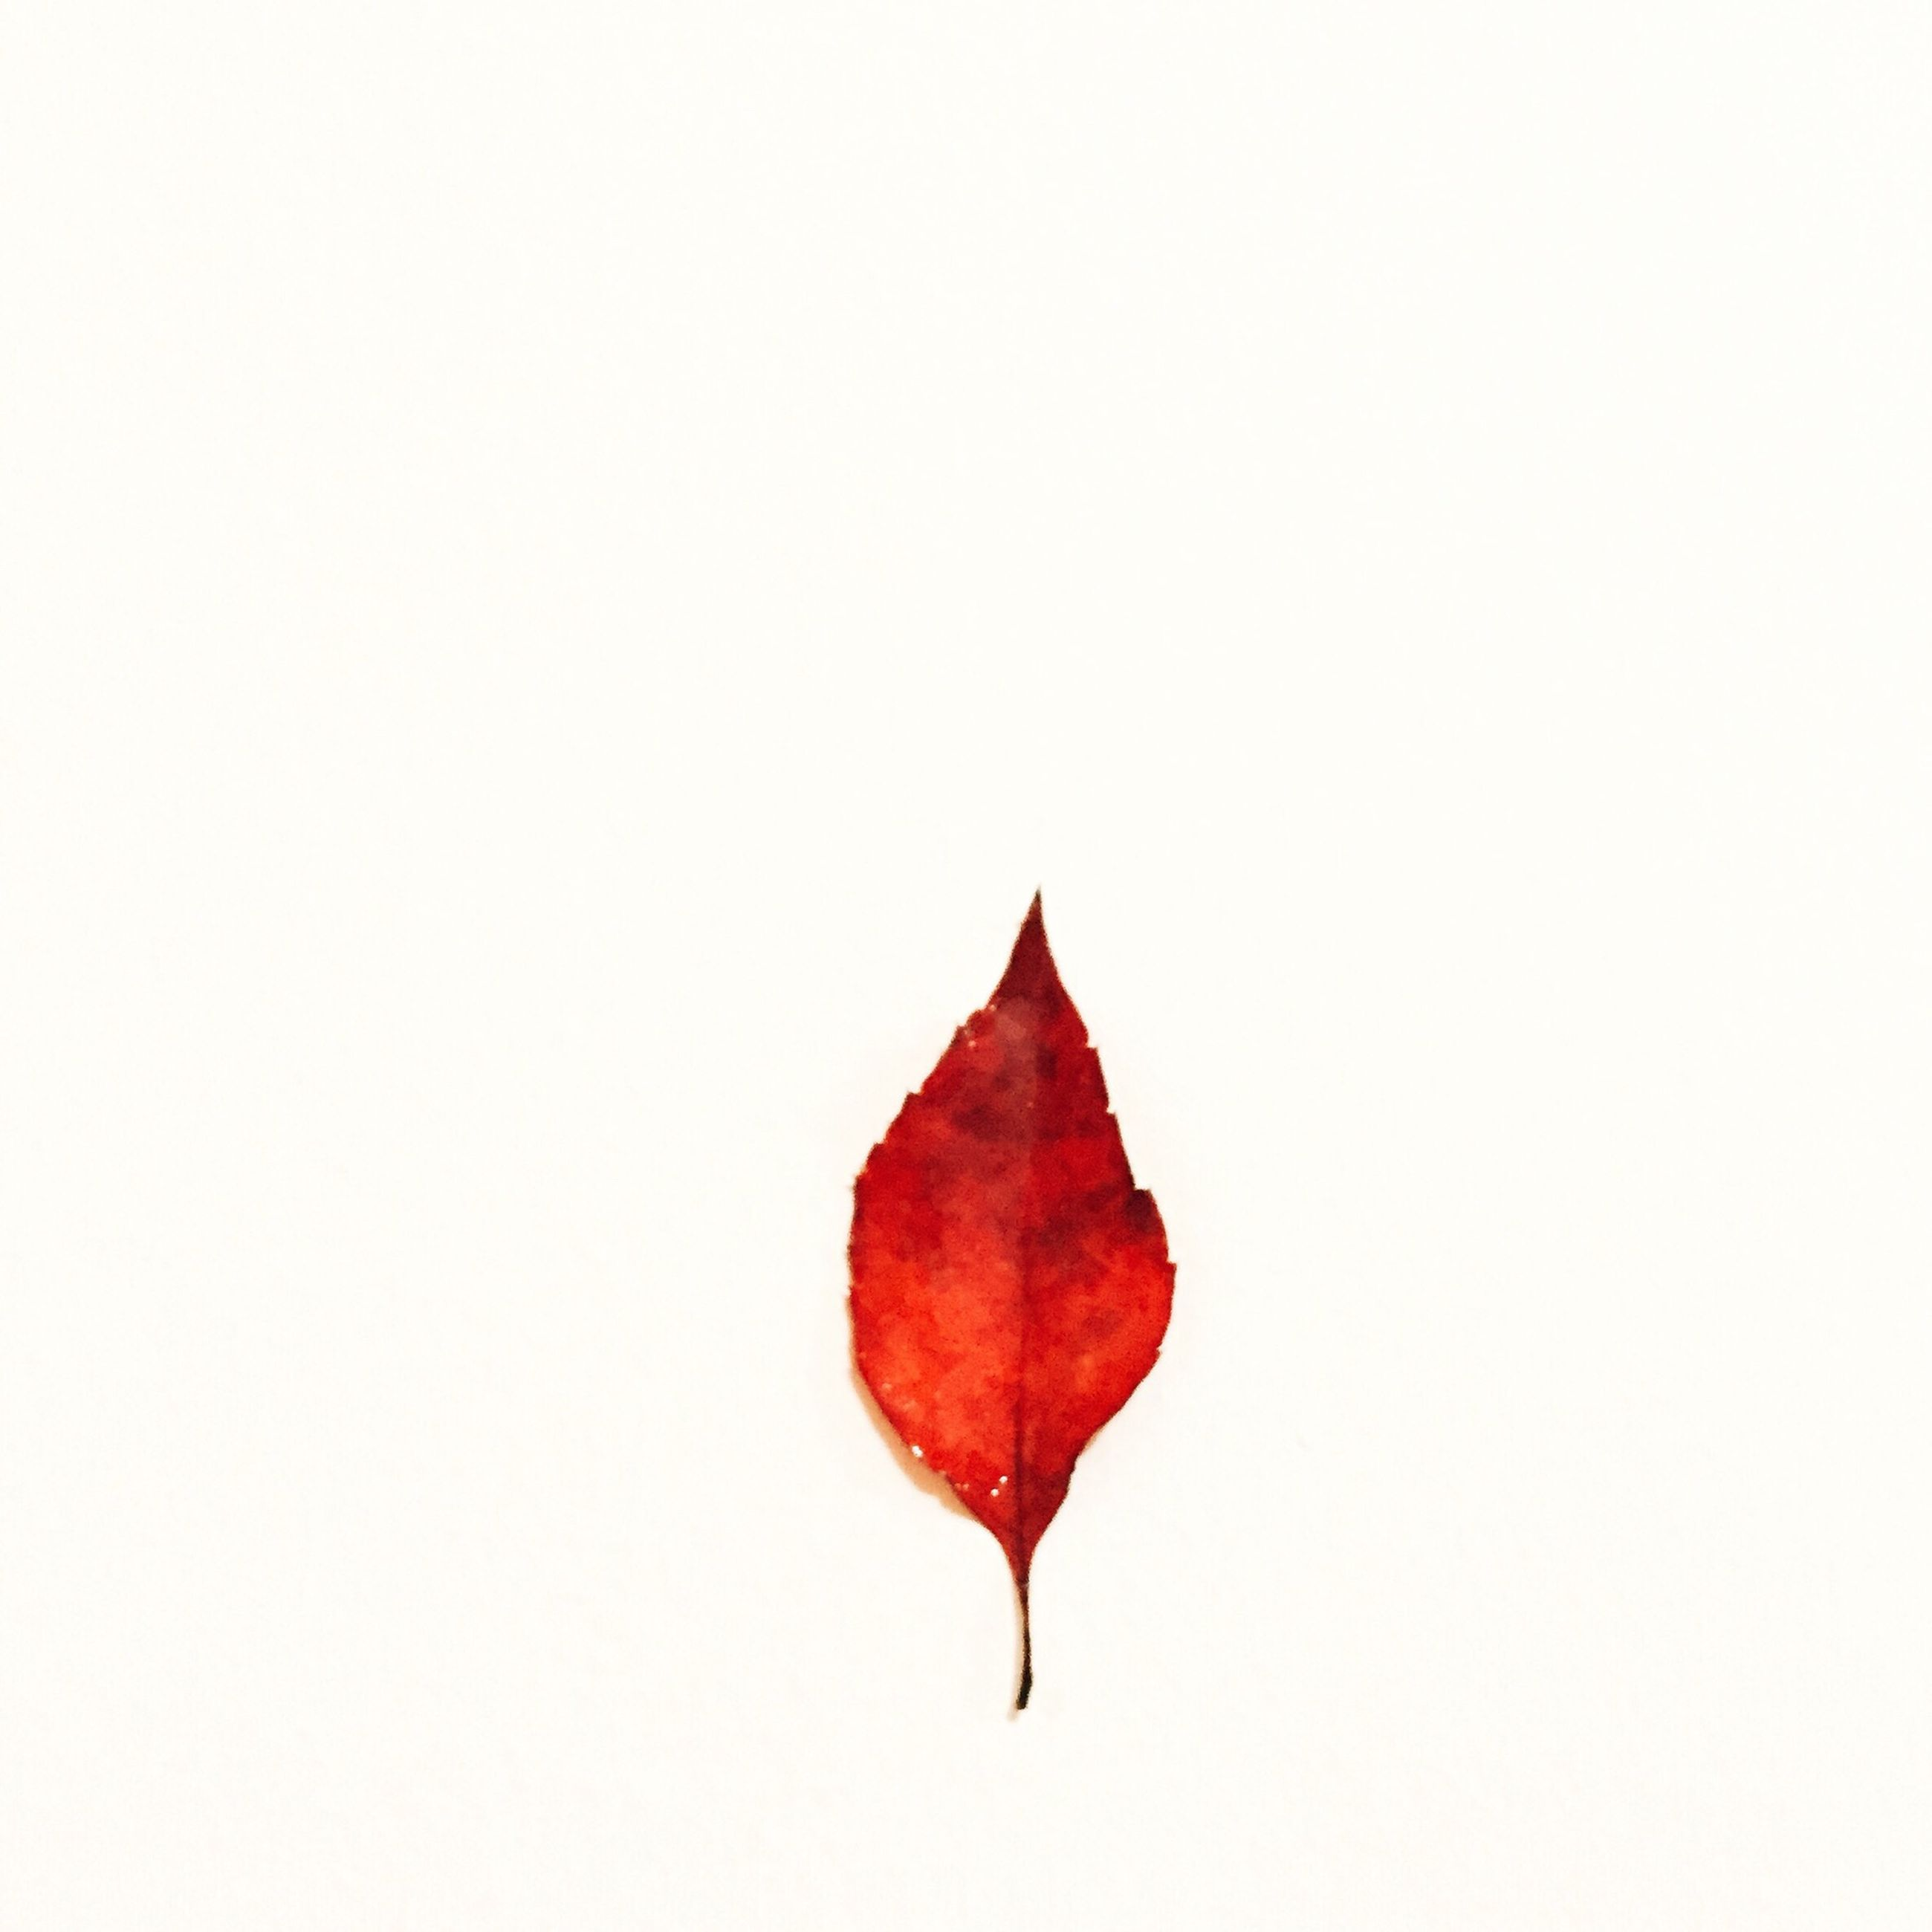 red, autumn, leaf, change, copy space, studio shot, season, white background, leaf vein, clear sky, close-up, leaves, maple leaf, natural pattern, nature, dry, single object, no people, vibrant color, day